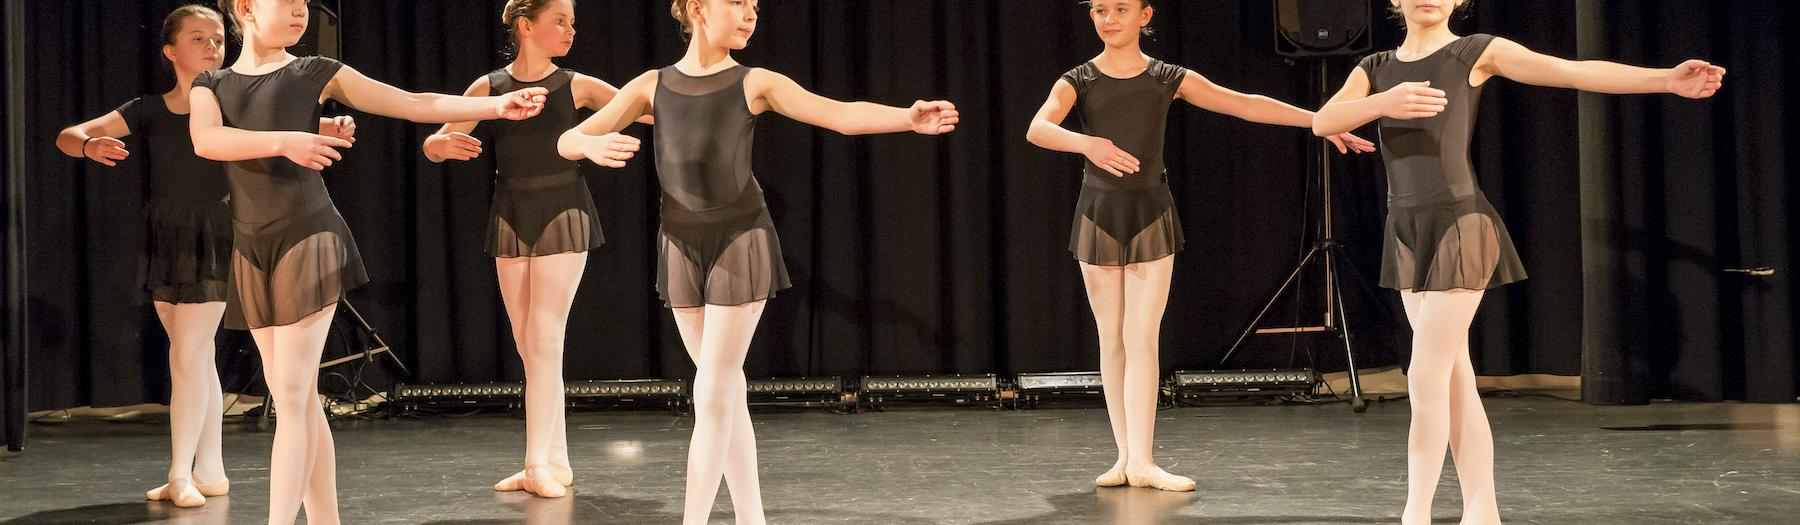 eventbild_ballett_kids